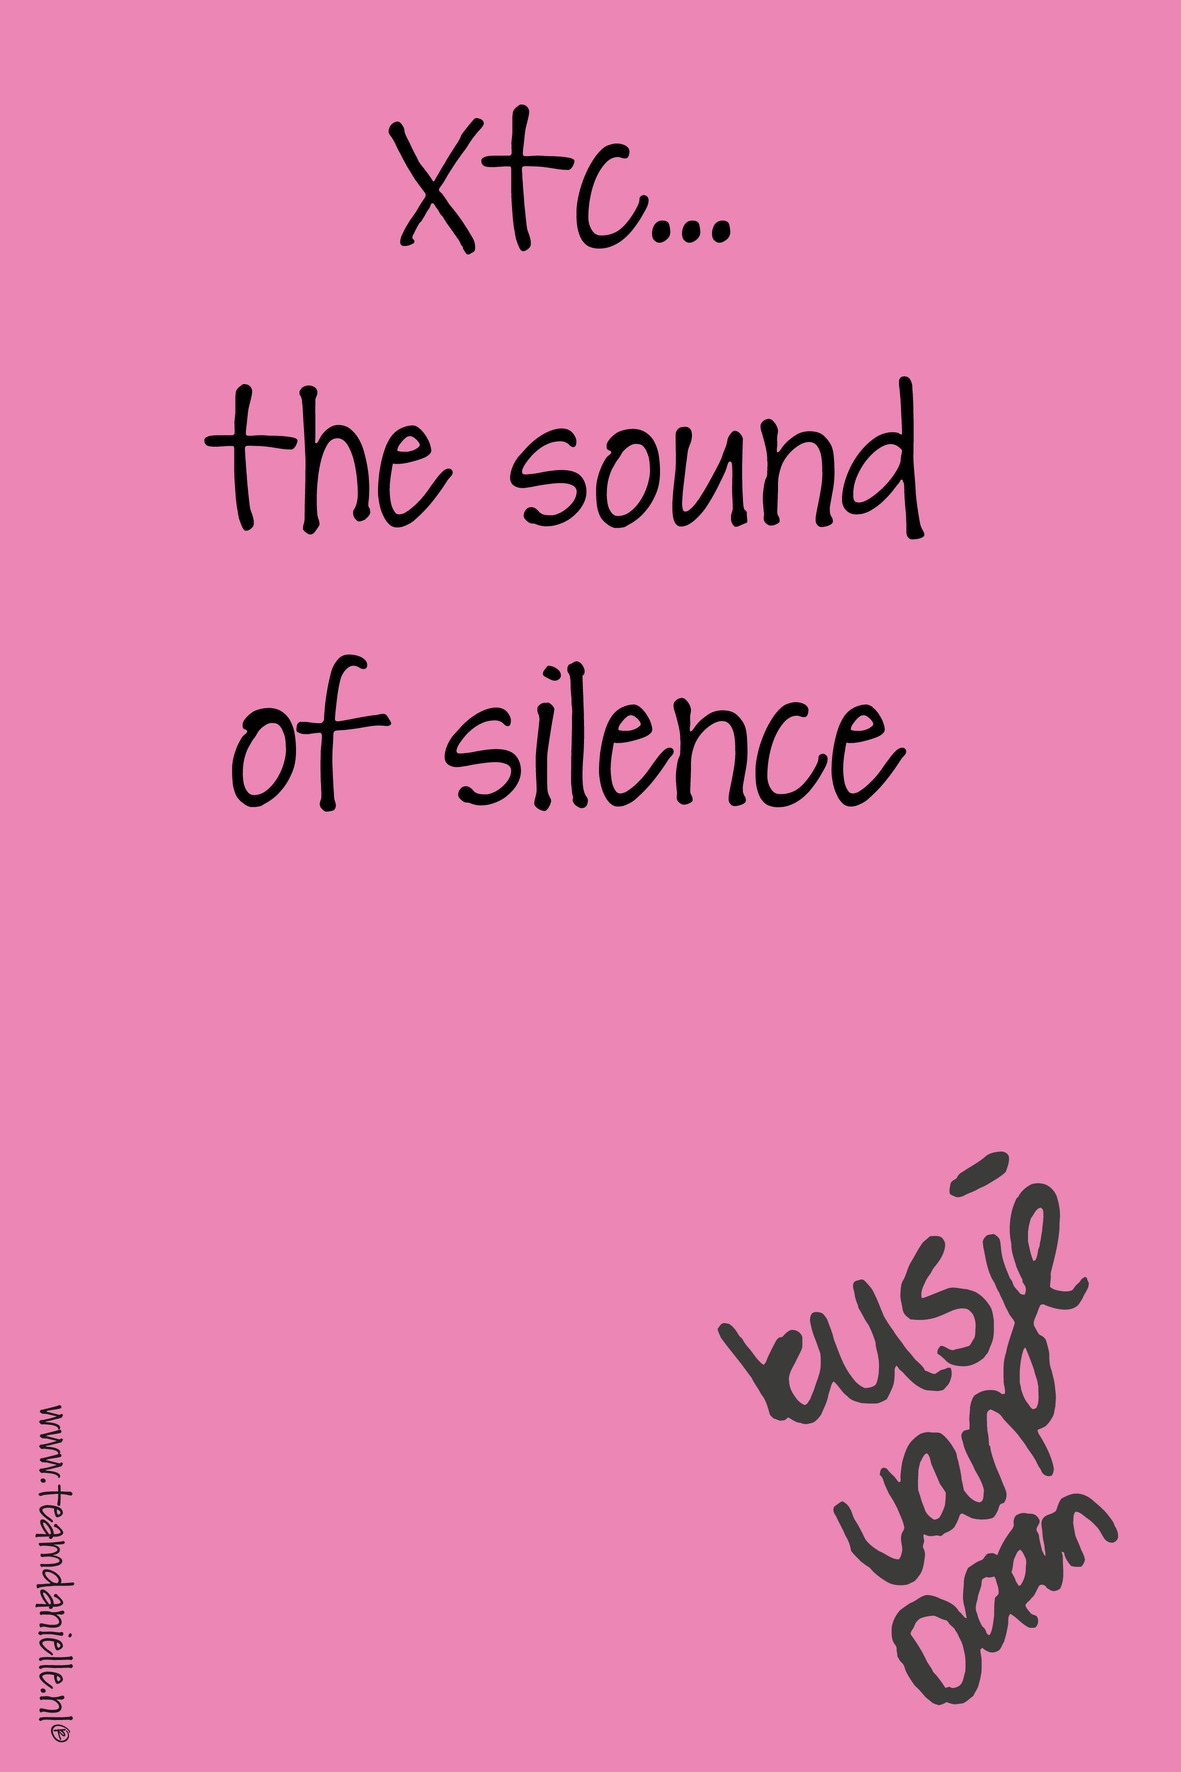 Kusje-180315-m-the sound of silence